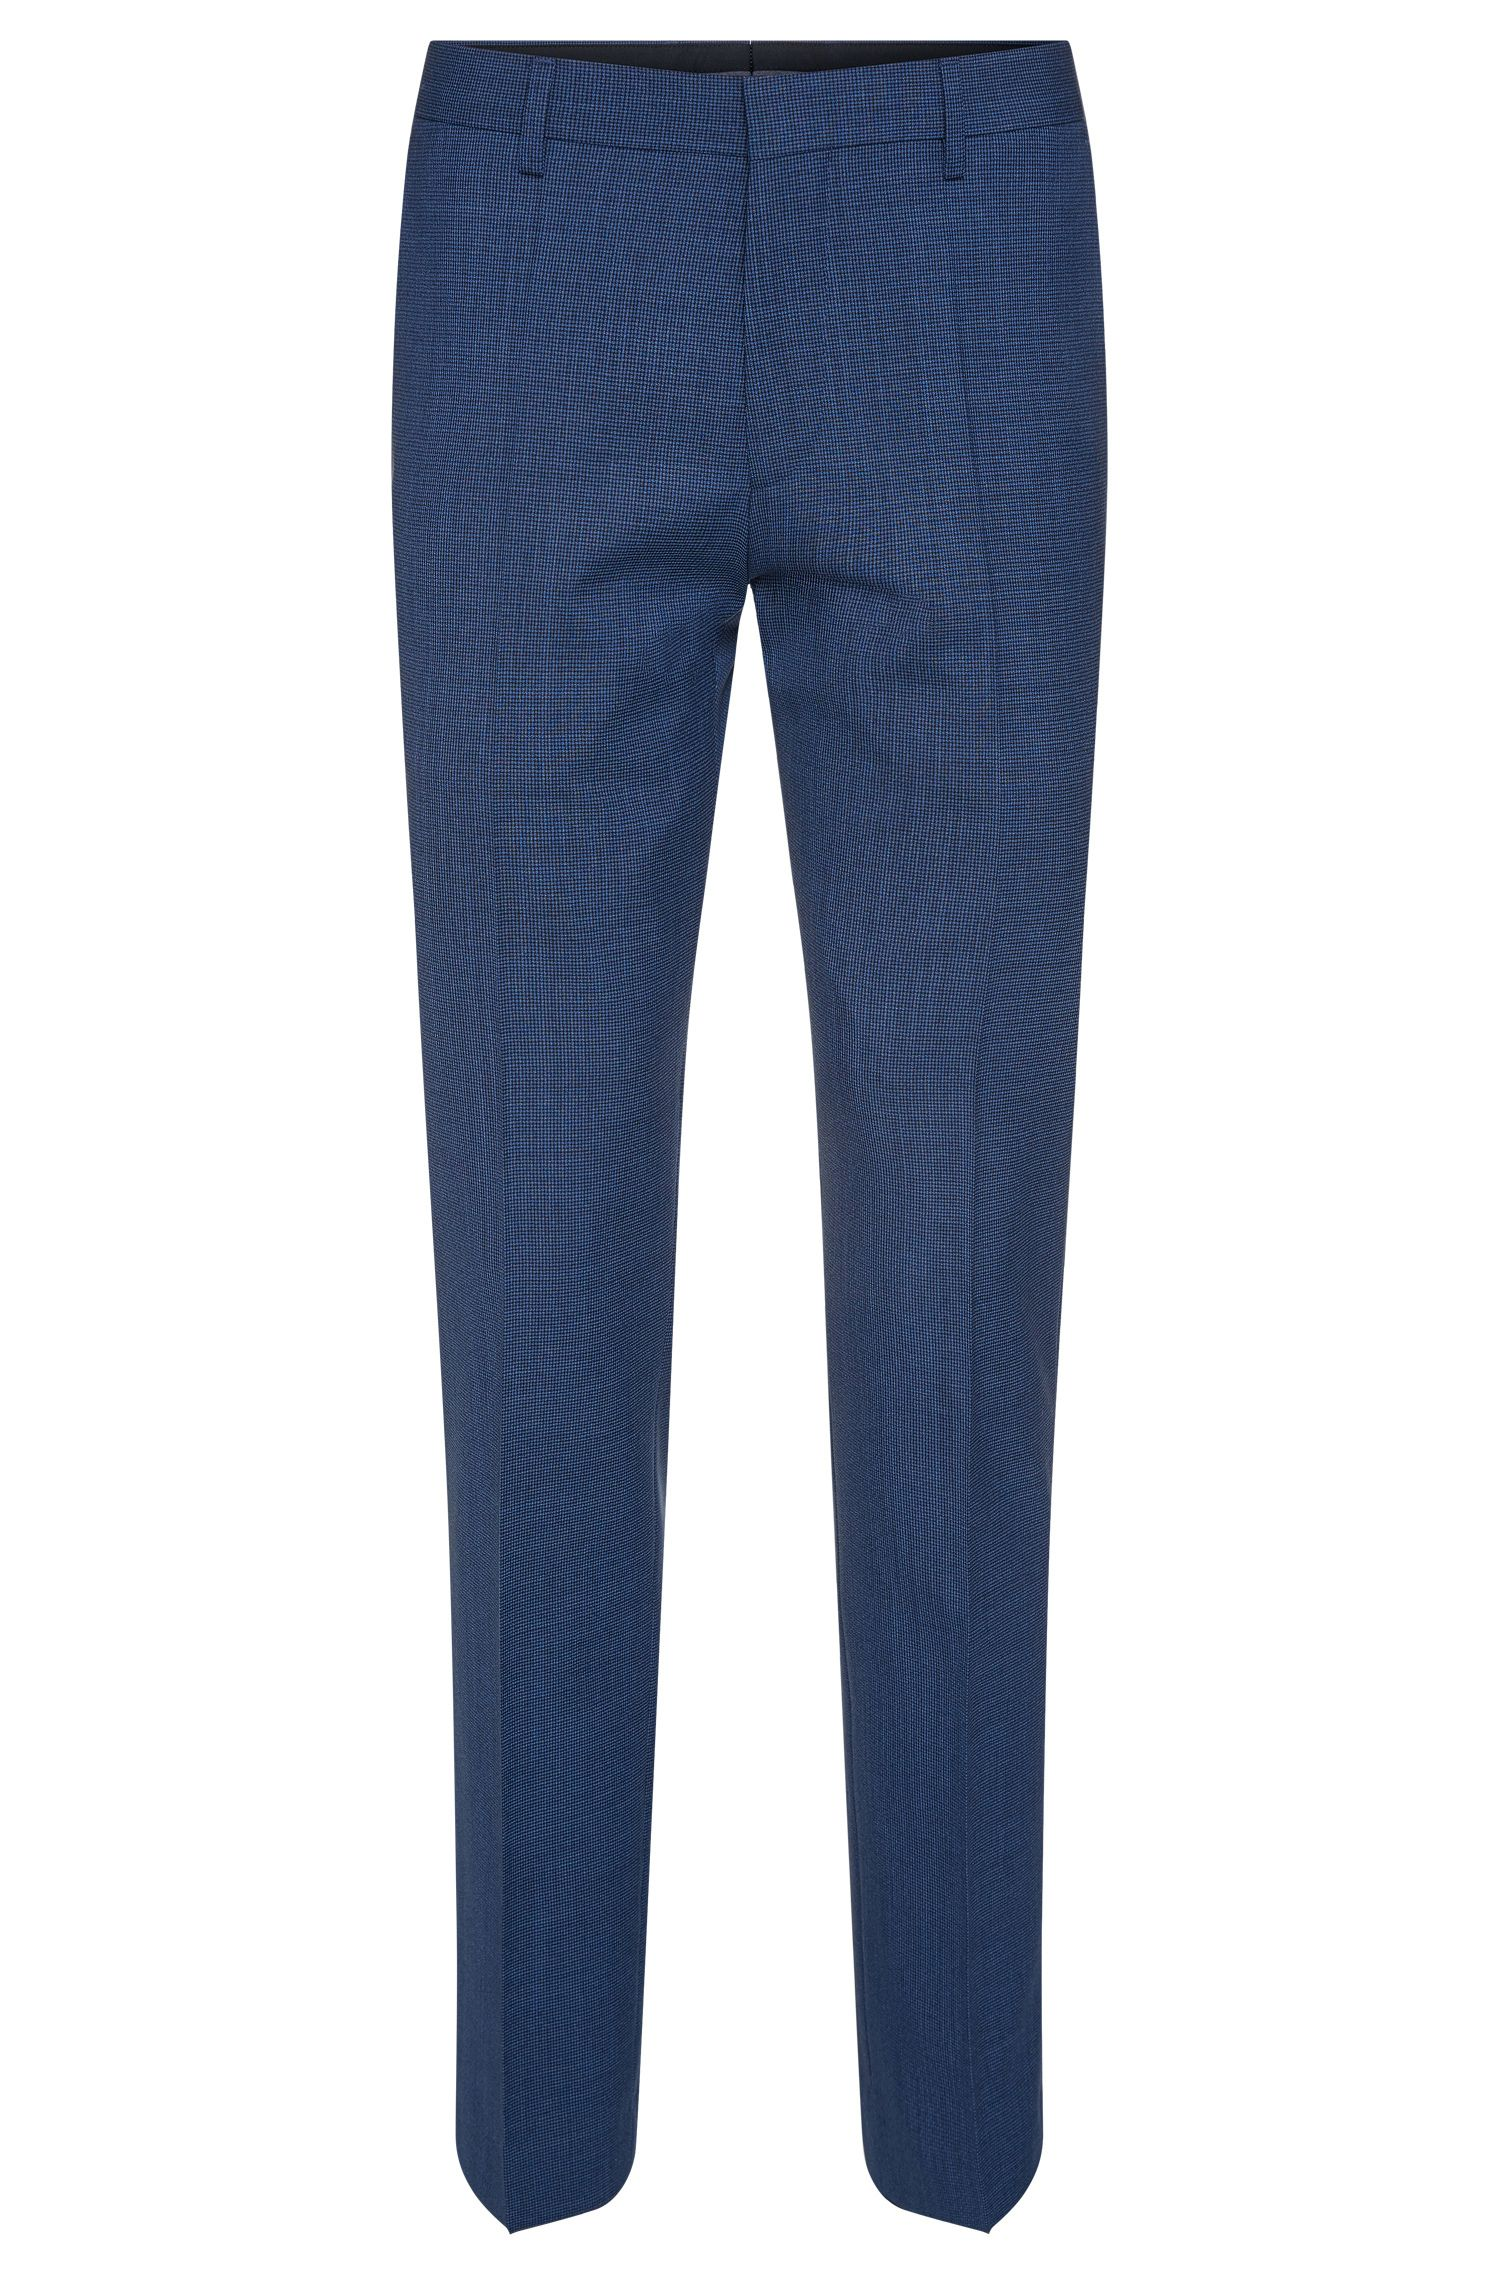 'Genesis' | Slim Fit, Virgin Wool Patterned Dress Pants